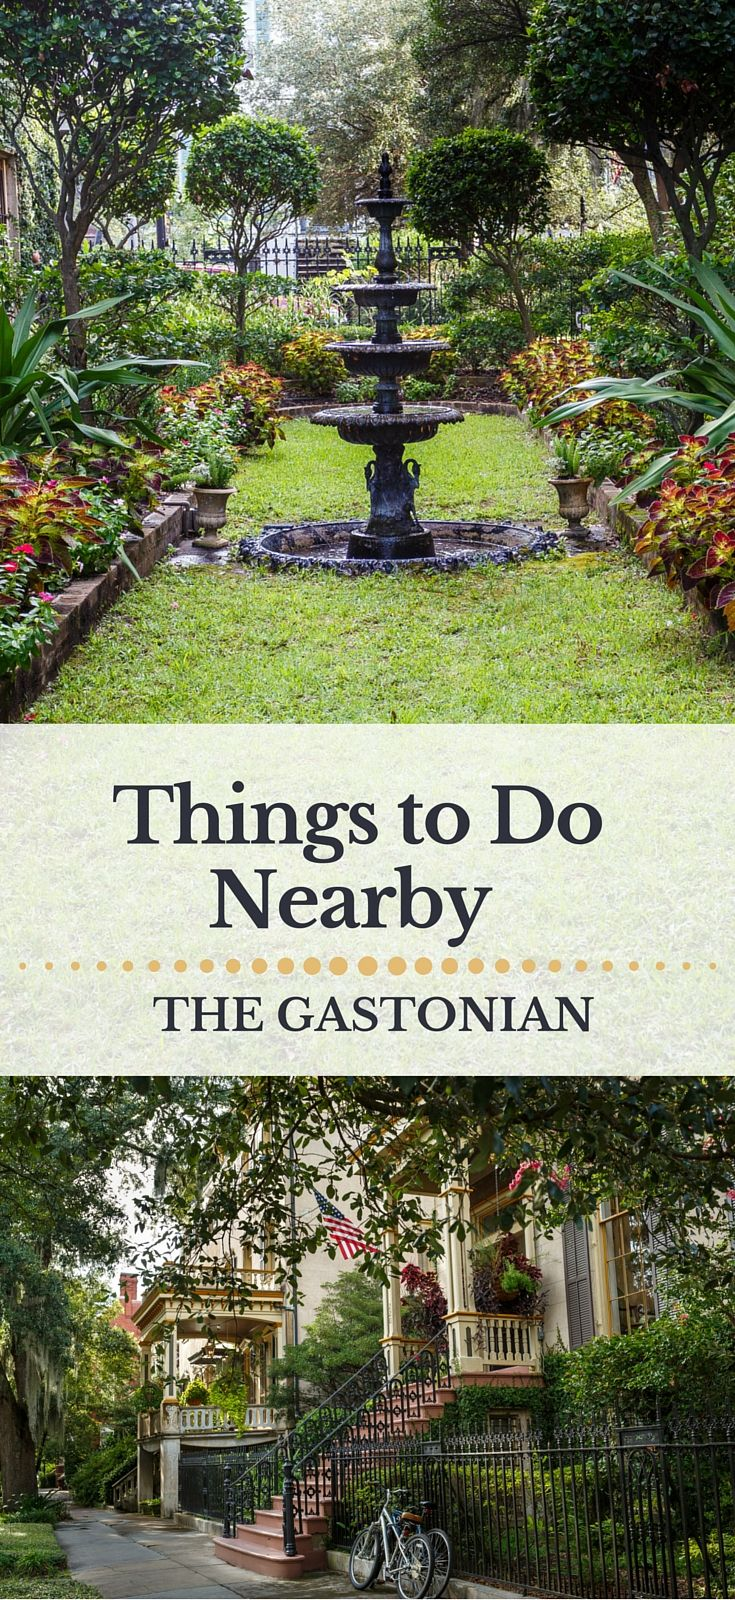 Things to do in Savannah when you stay at The Gastonian.  Activities and interesting sites near The Gastonian hotel.   http://www.gastonian.com/area-guide.htm